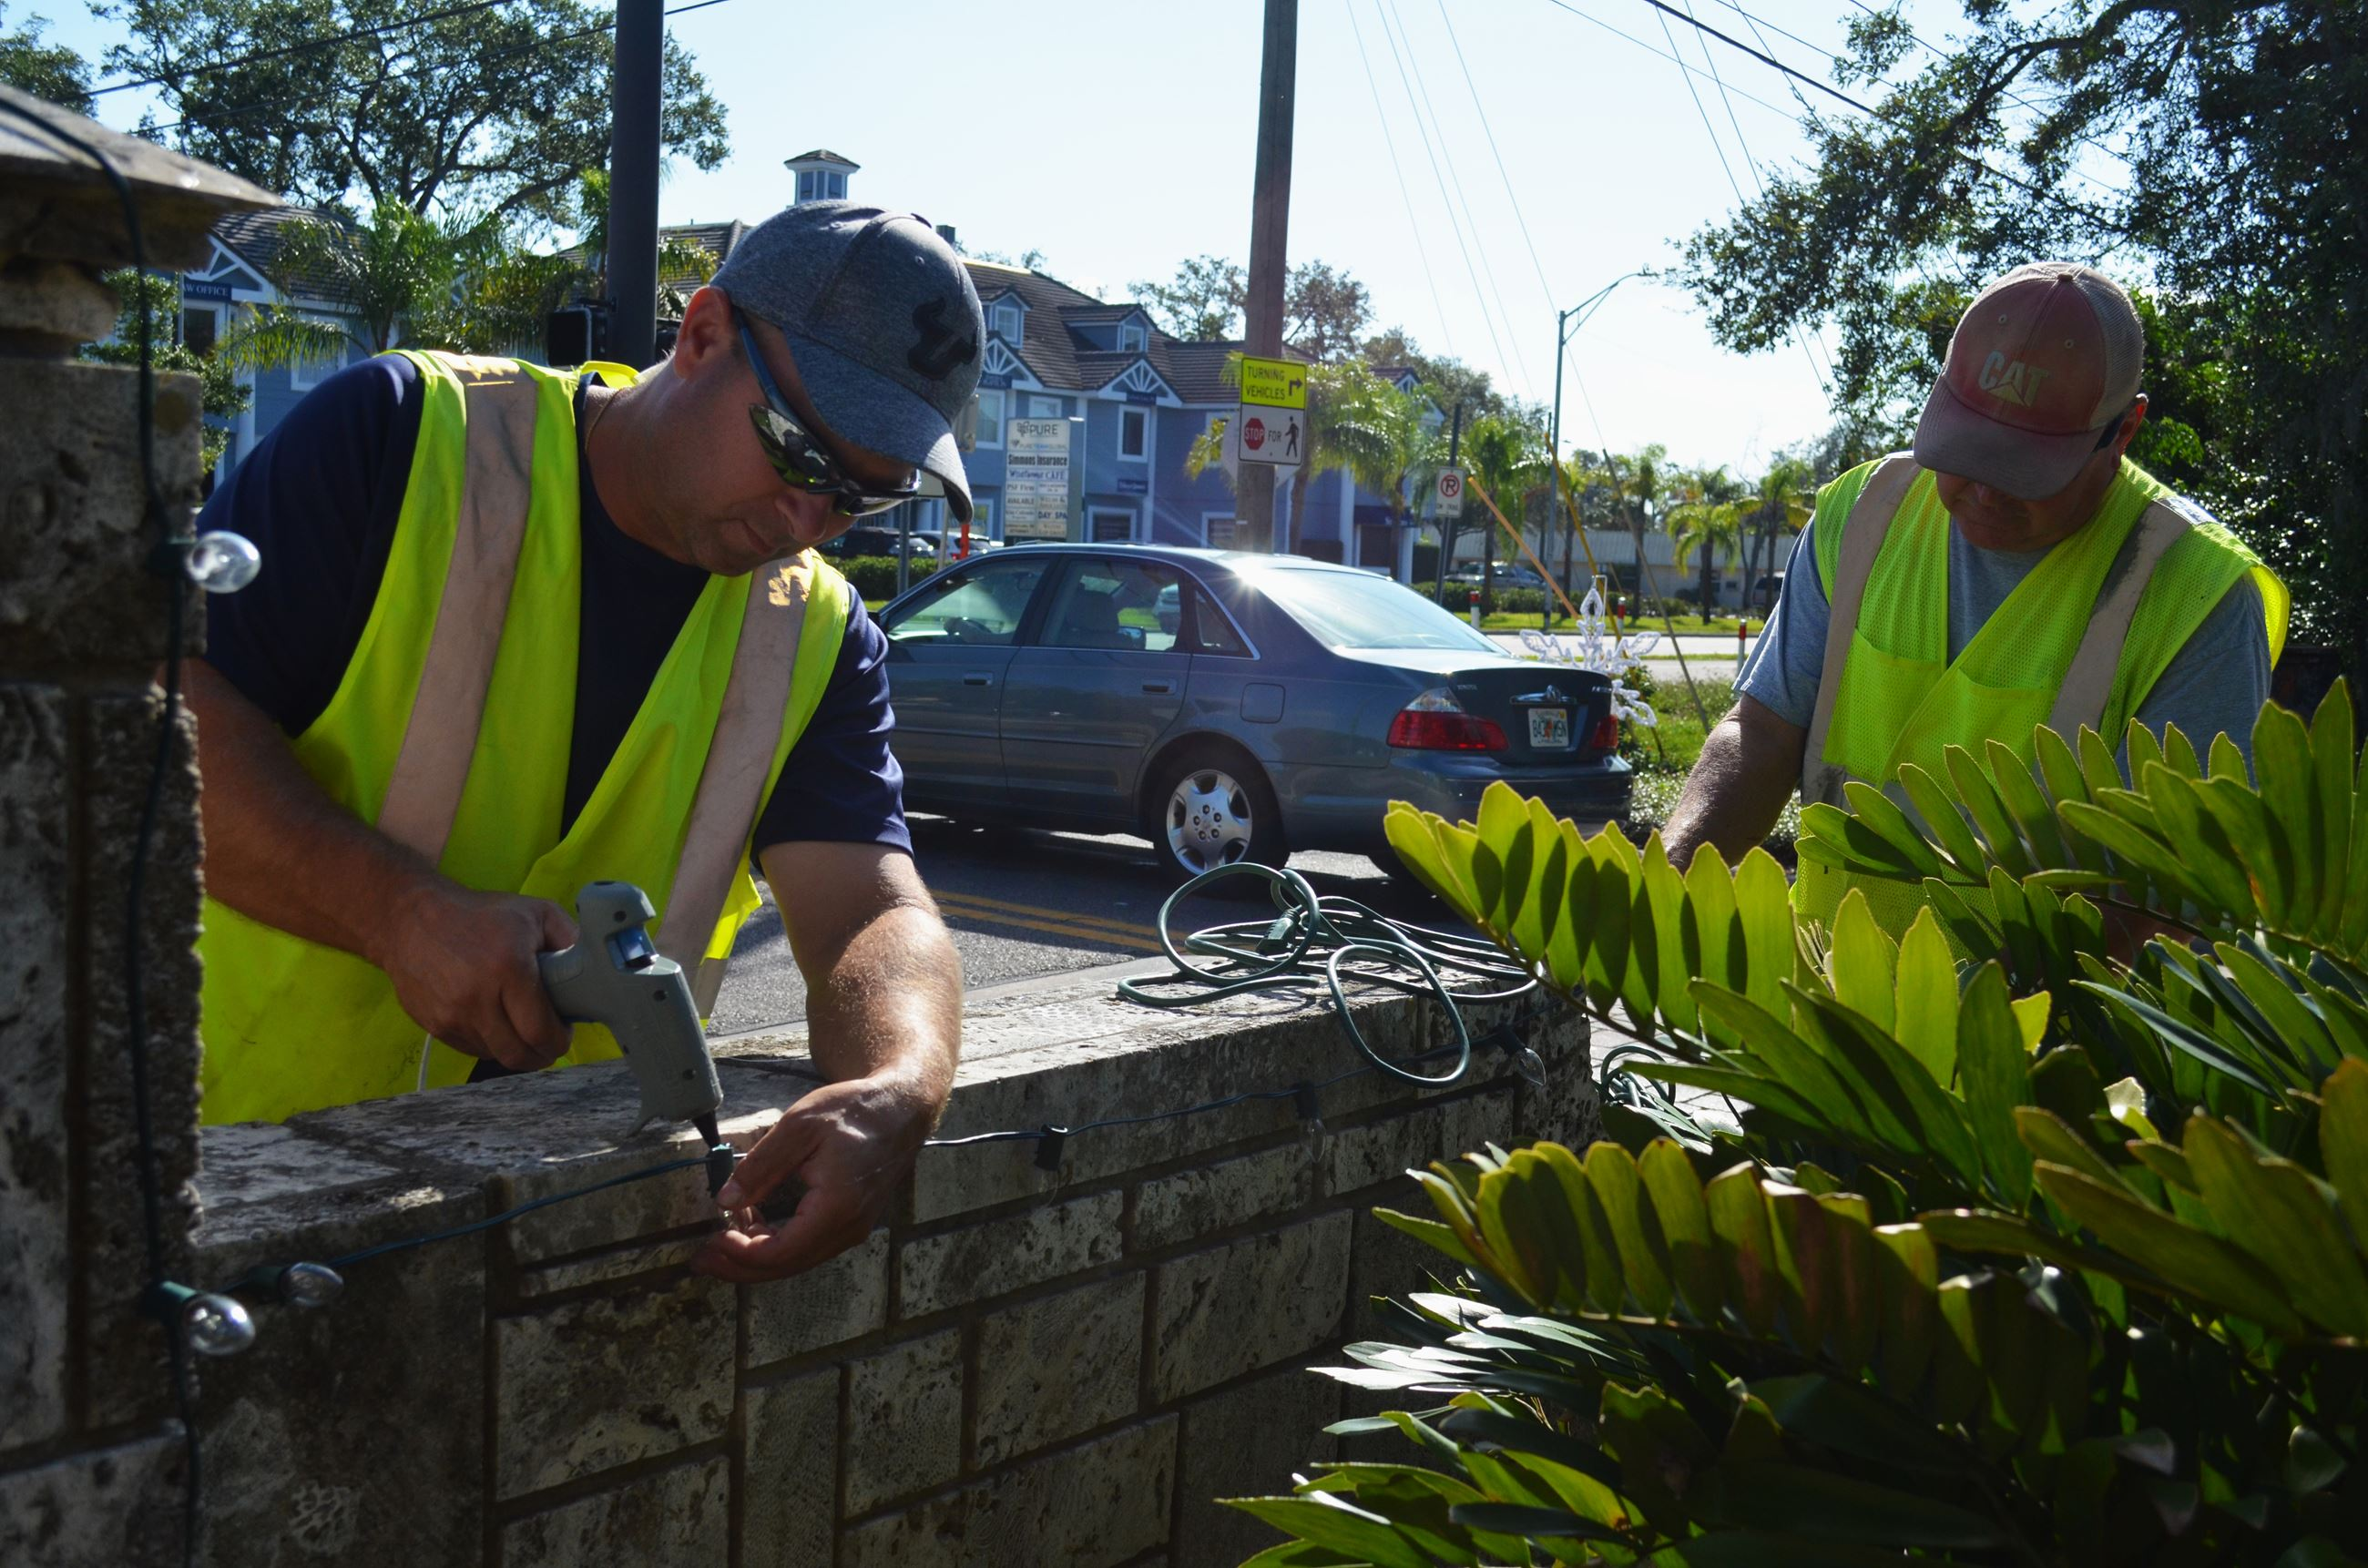 Two men in yellow vests affix holiday lights to a Town of Belleair entrance sign.